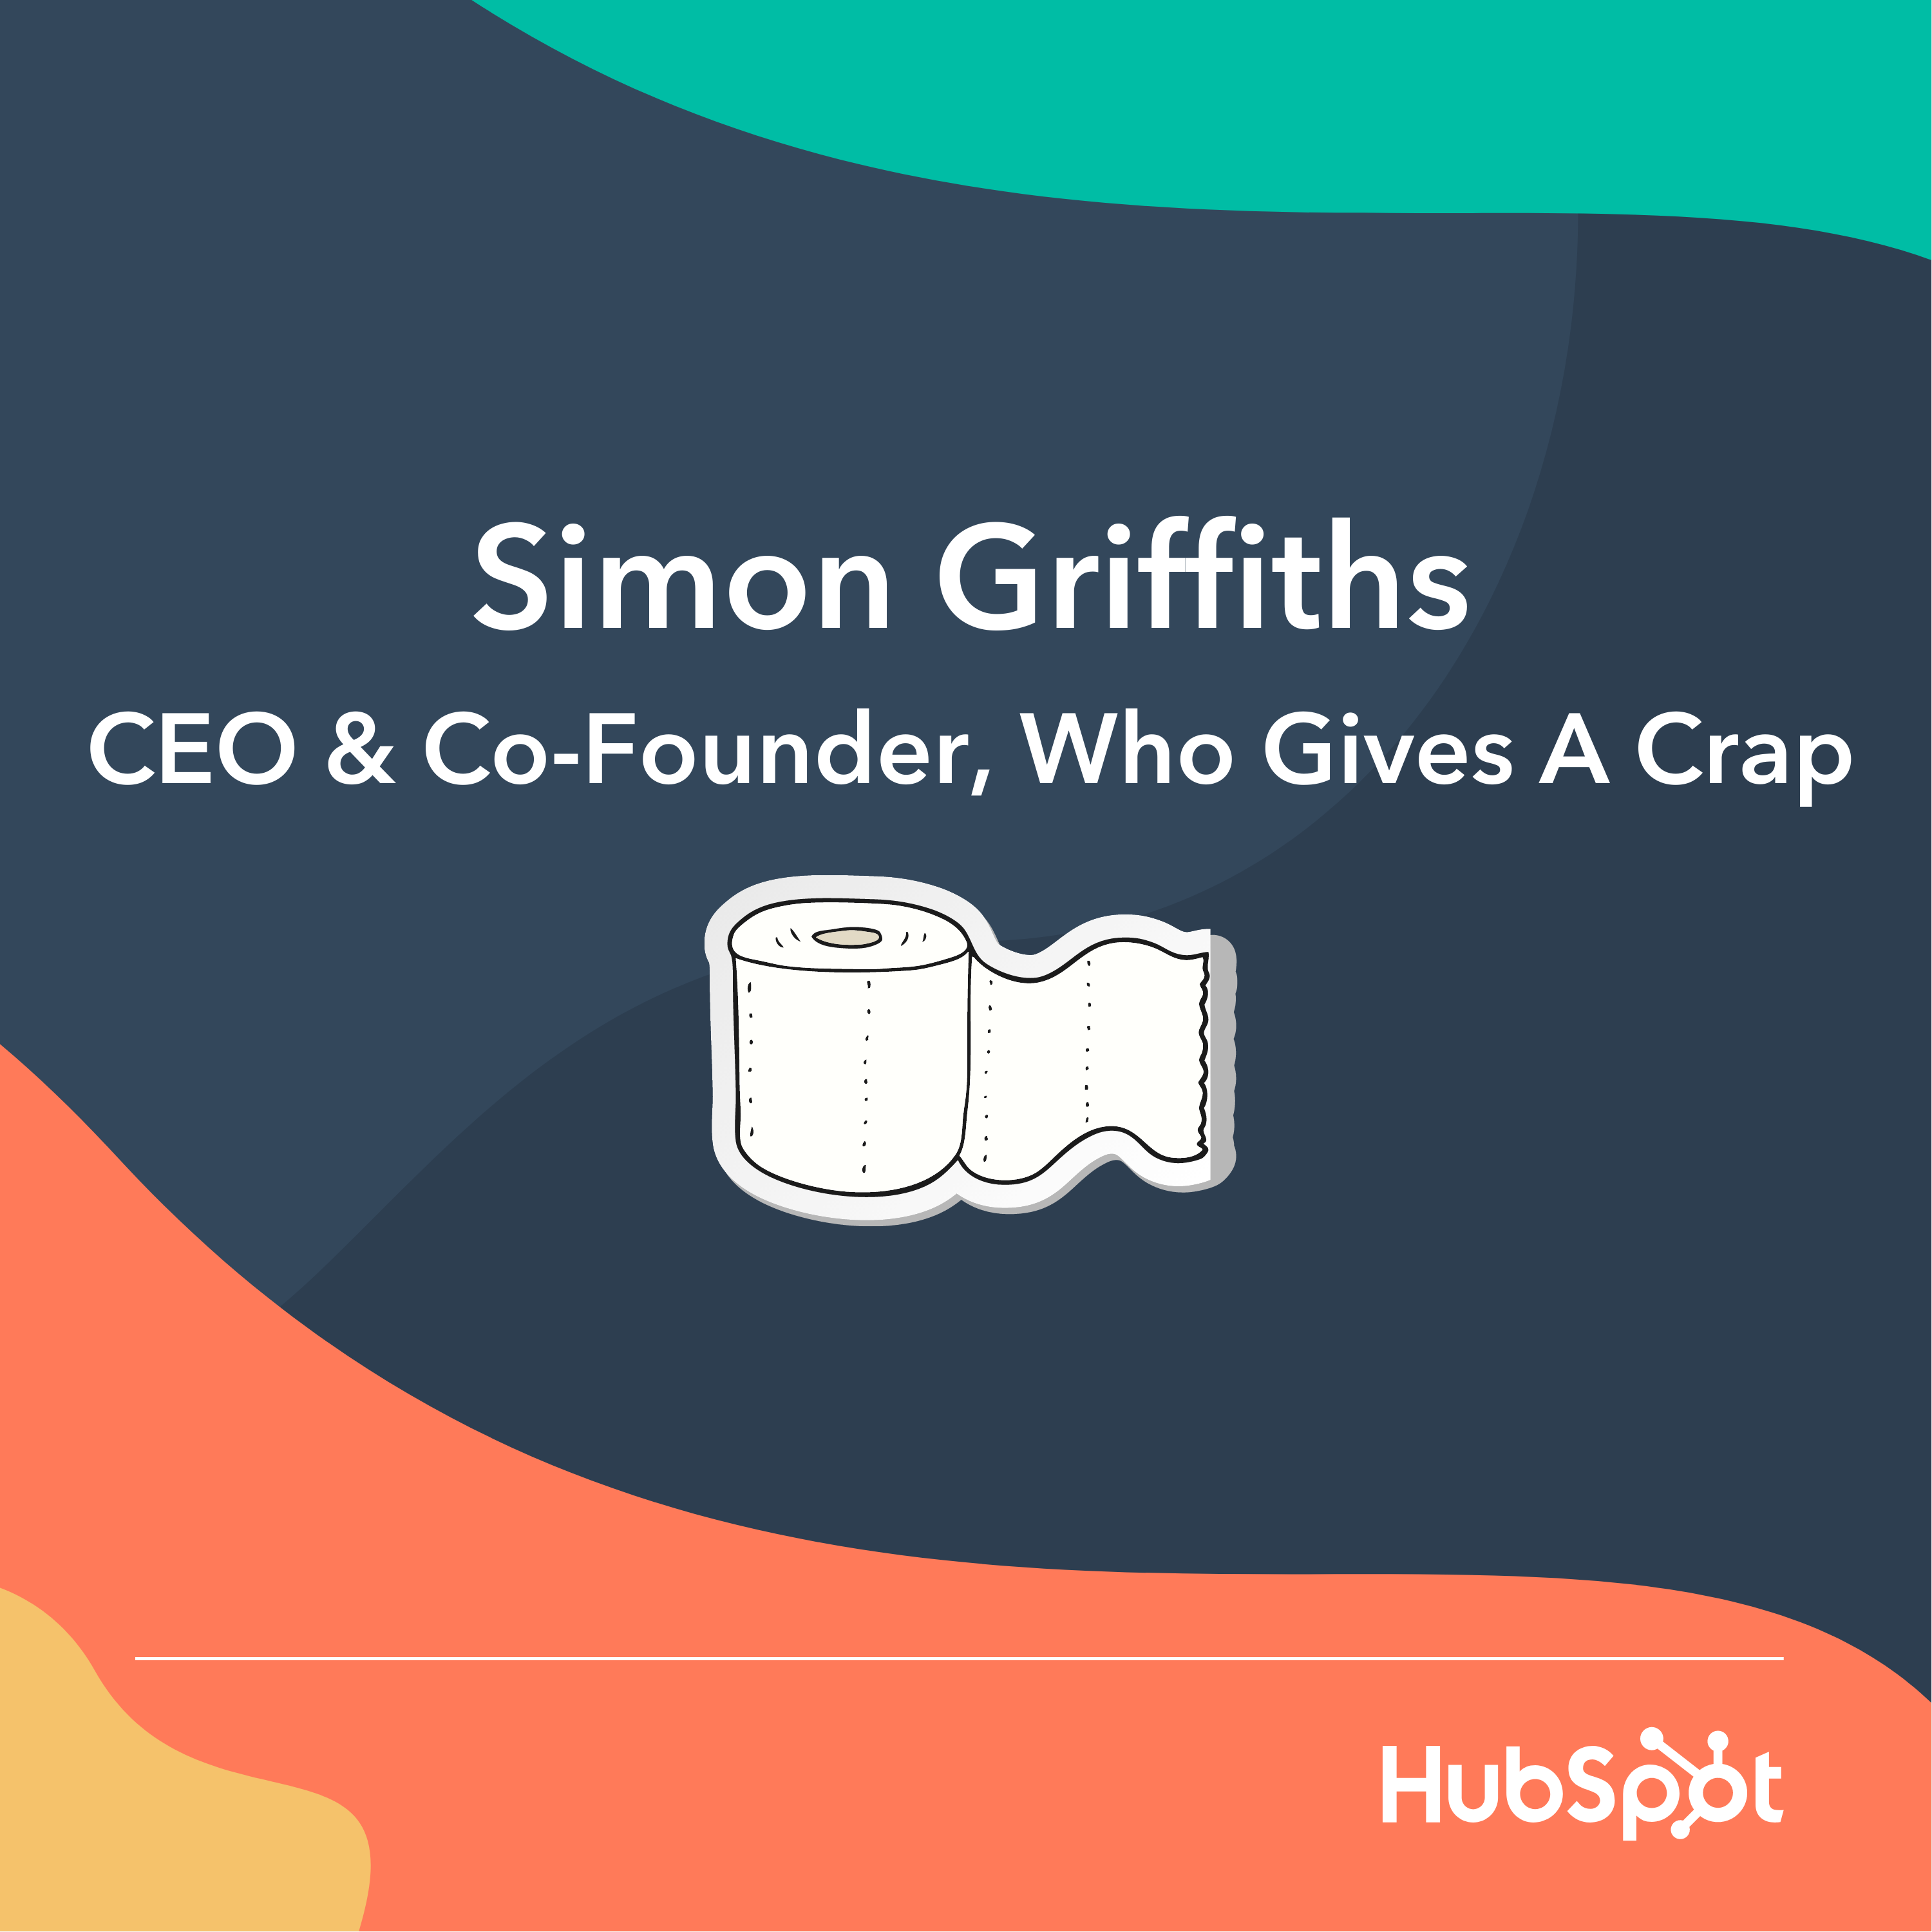 Simon Griffiths CEO & Co-Founder, Who GIves A Crap (1)-1